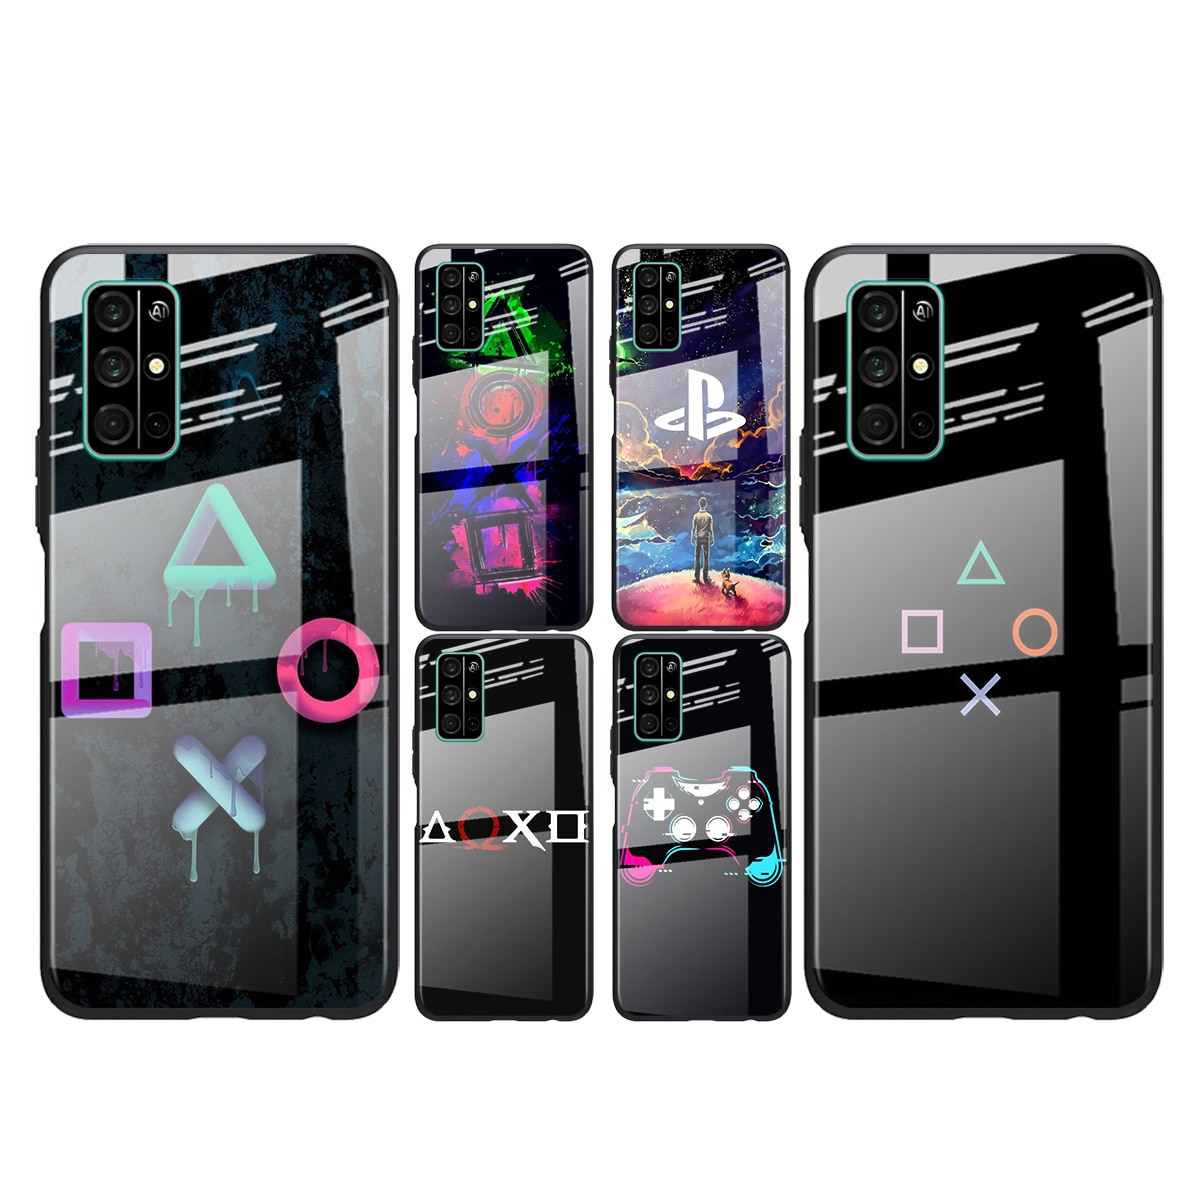 Tempered Glass Cover PlayStation Game Ps For Huawei Honor 30 20 10 9X 8X Pro Plus Lite Shockproof Shell Phone Case